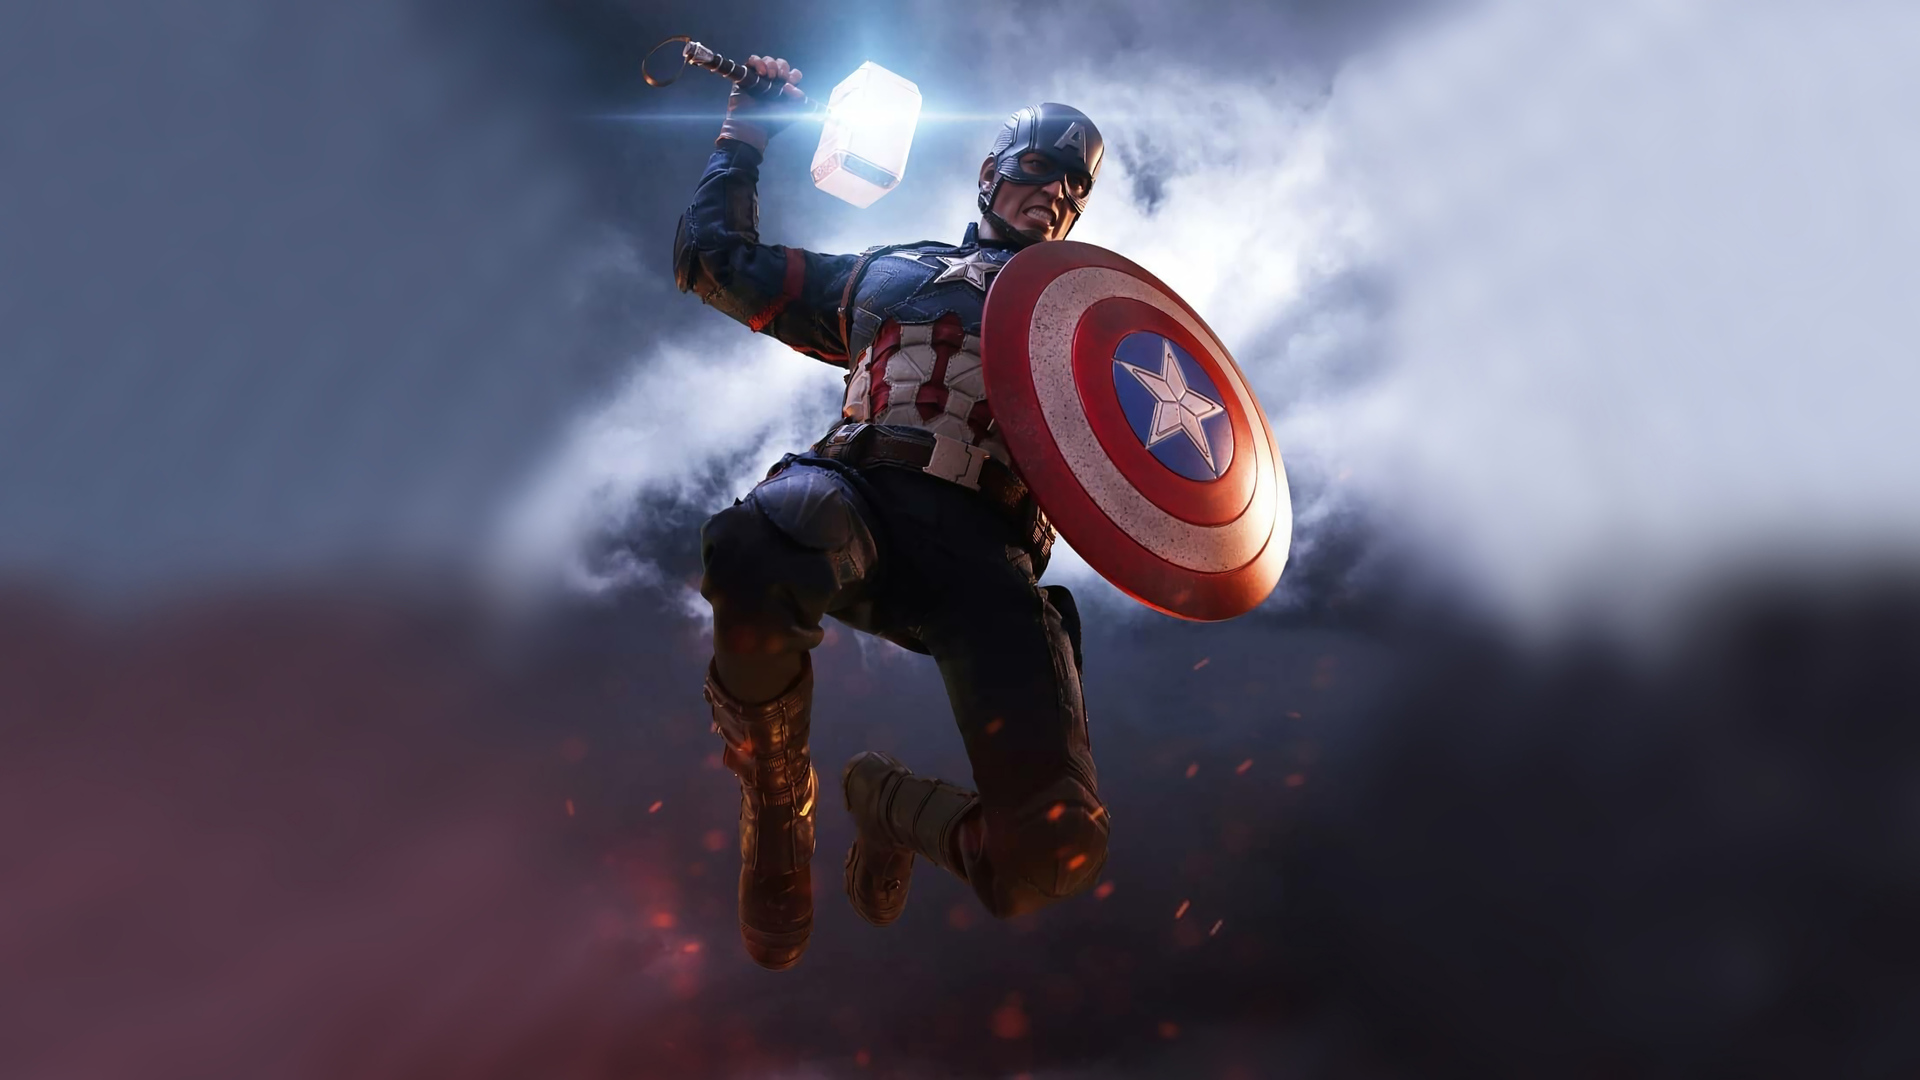 captain-america-shield-with-hammer-v9.jpg